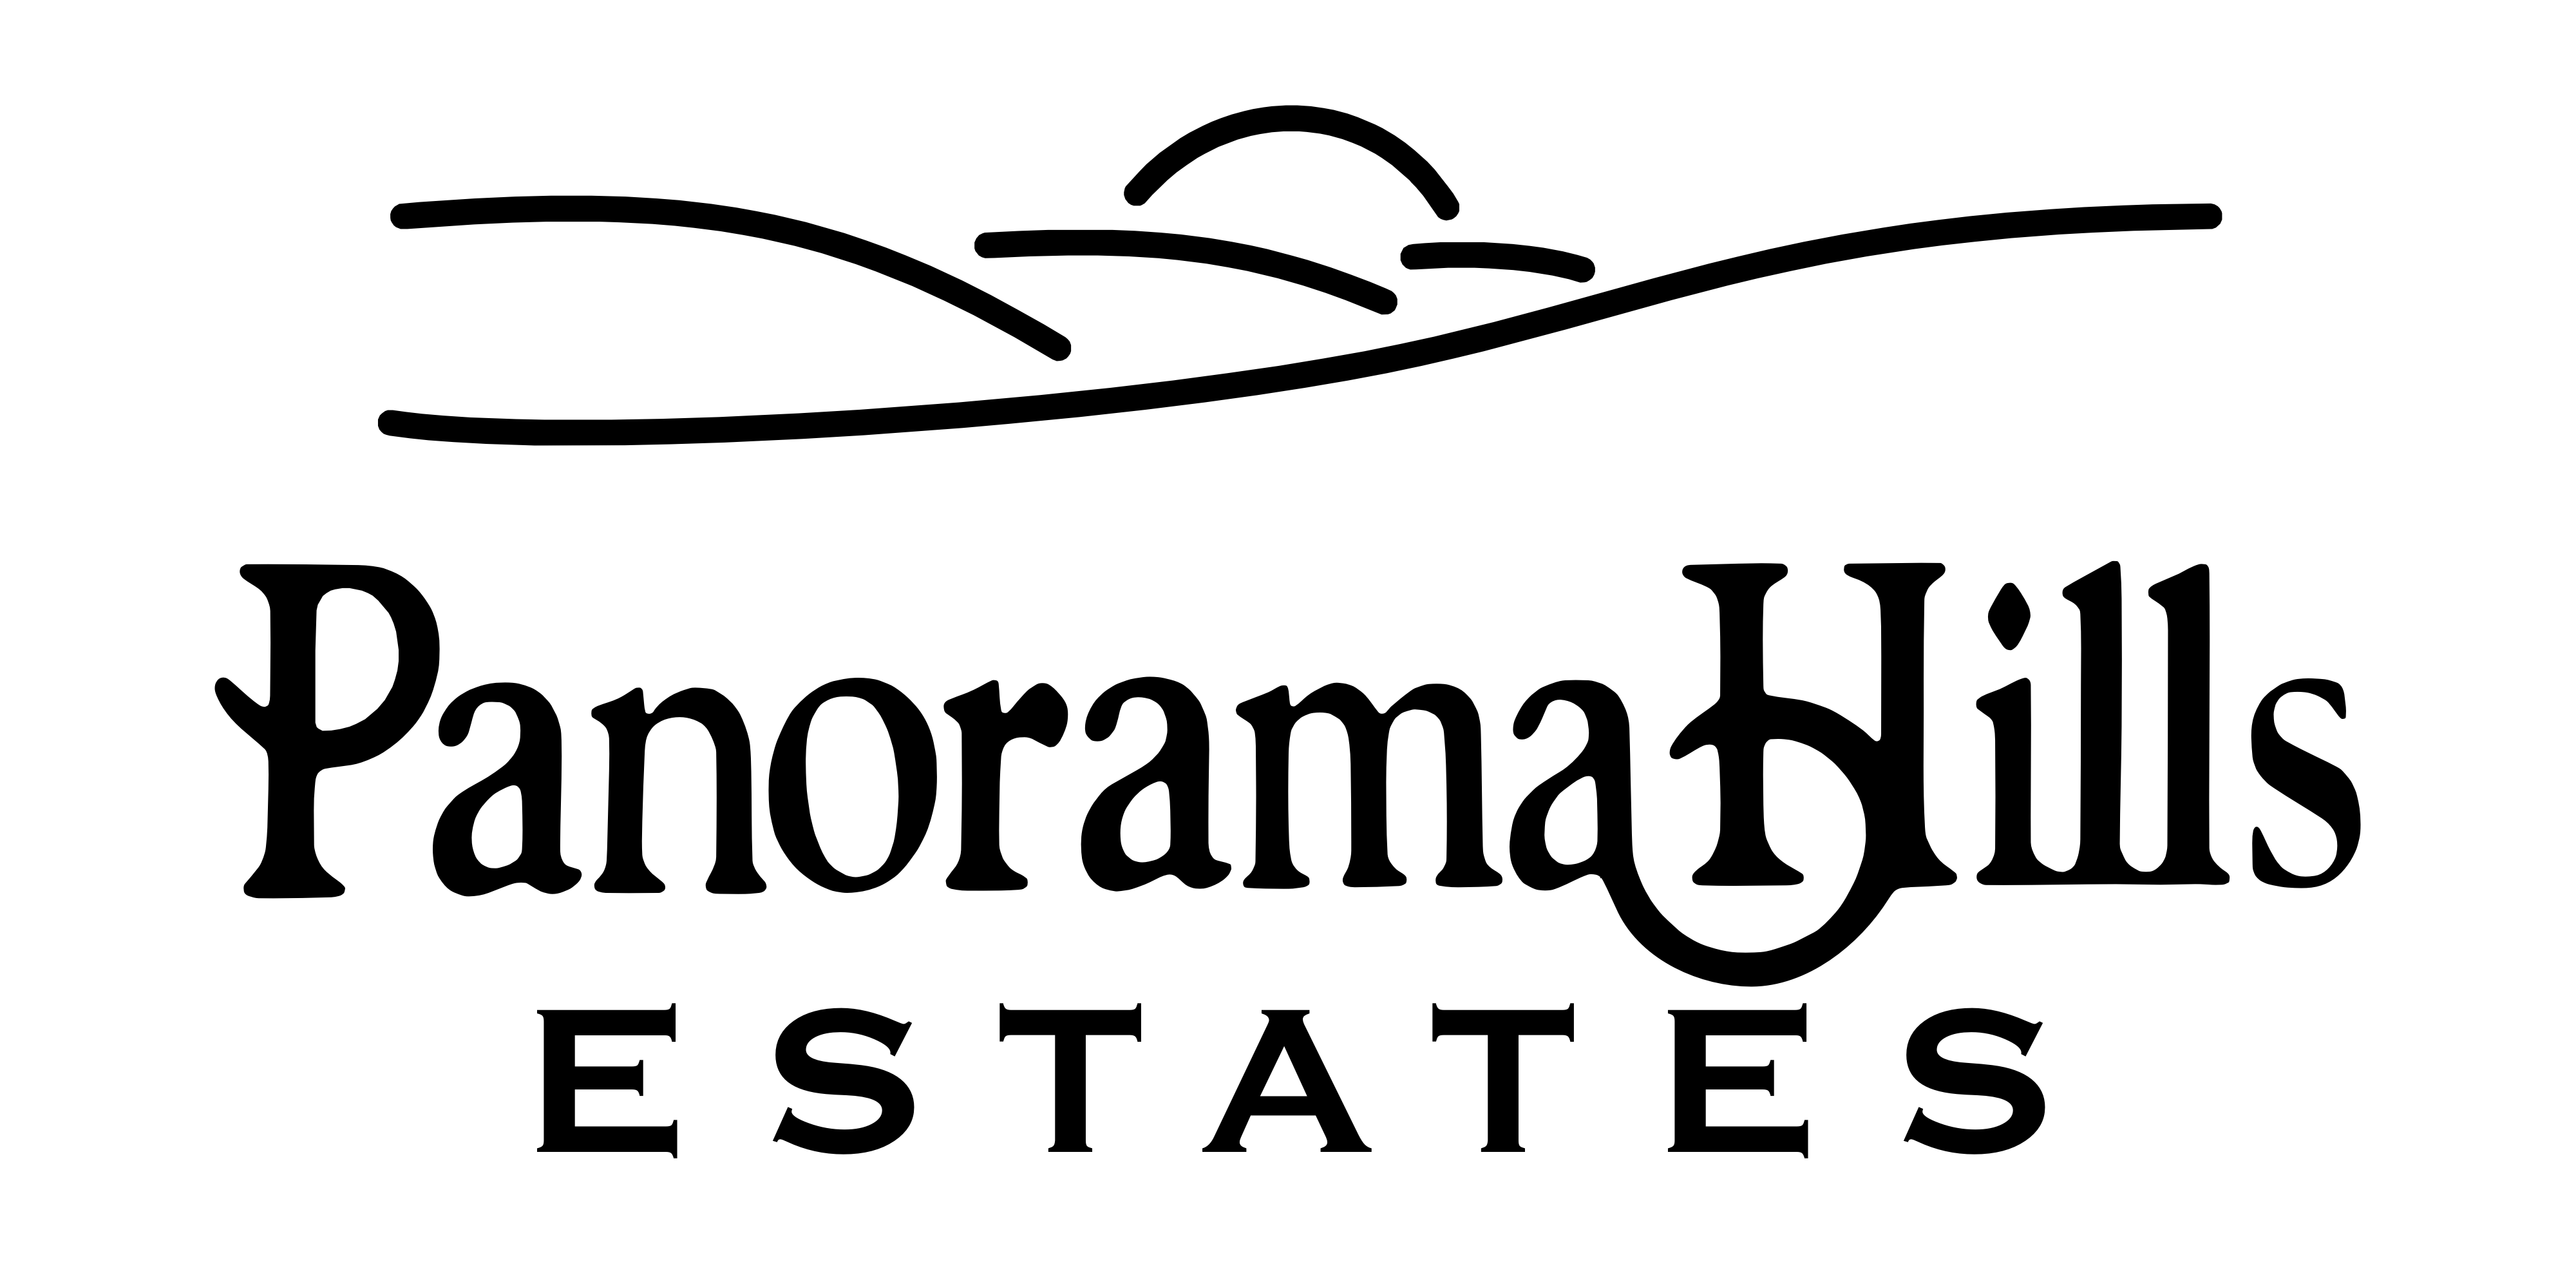 Panorama Hills Estates Homeowners Association